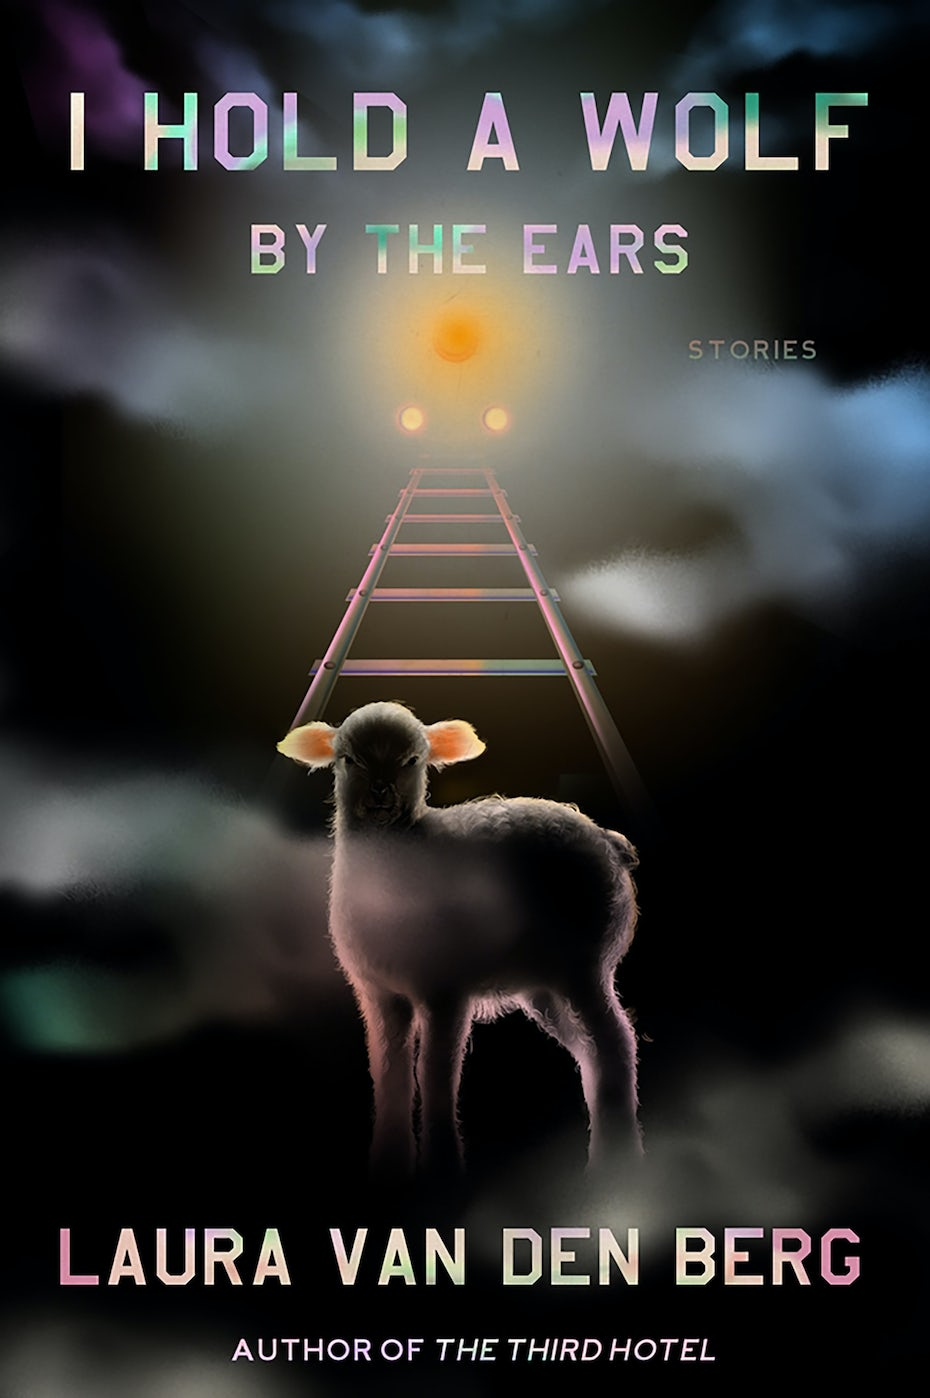 book cover trends example: dark book cover with an image of a rainbow ladder and a lamb at its base